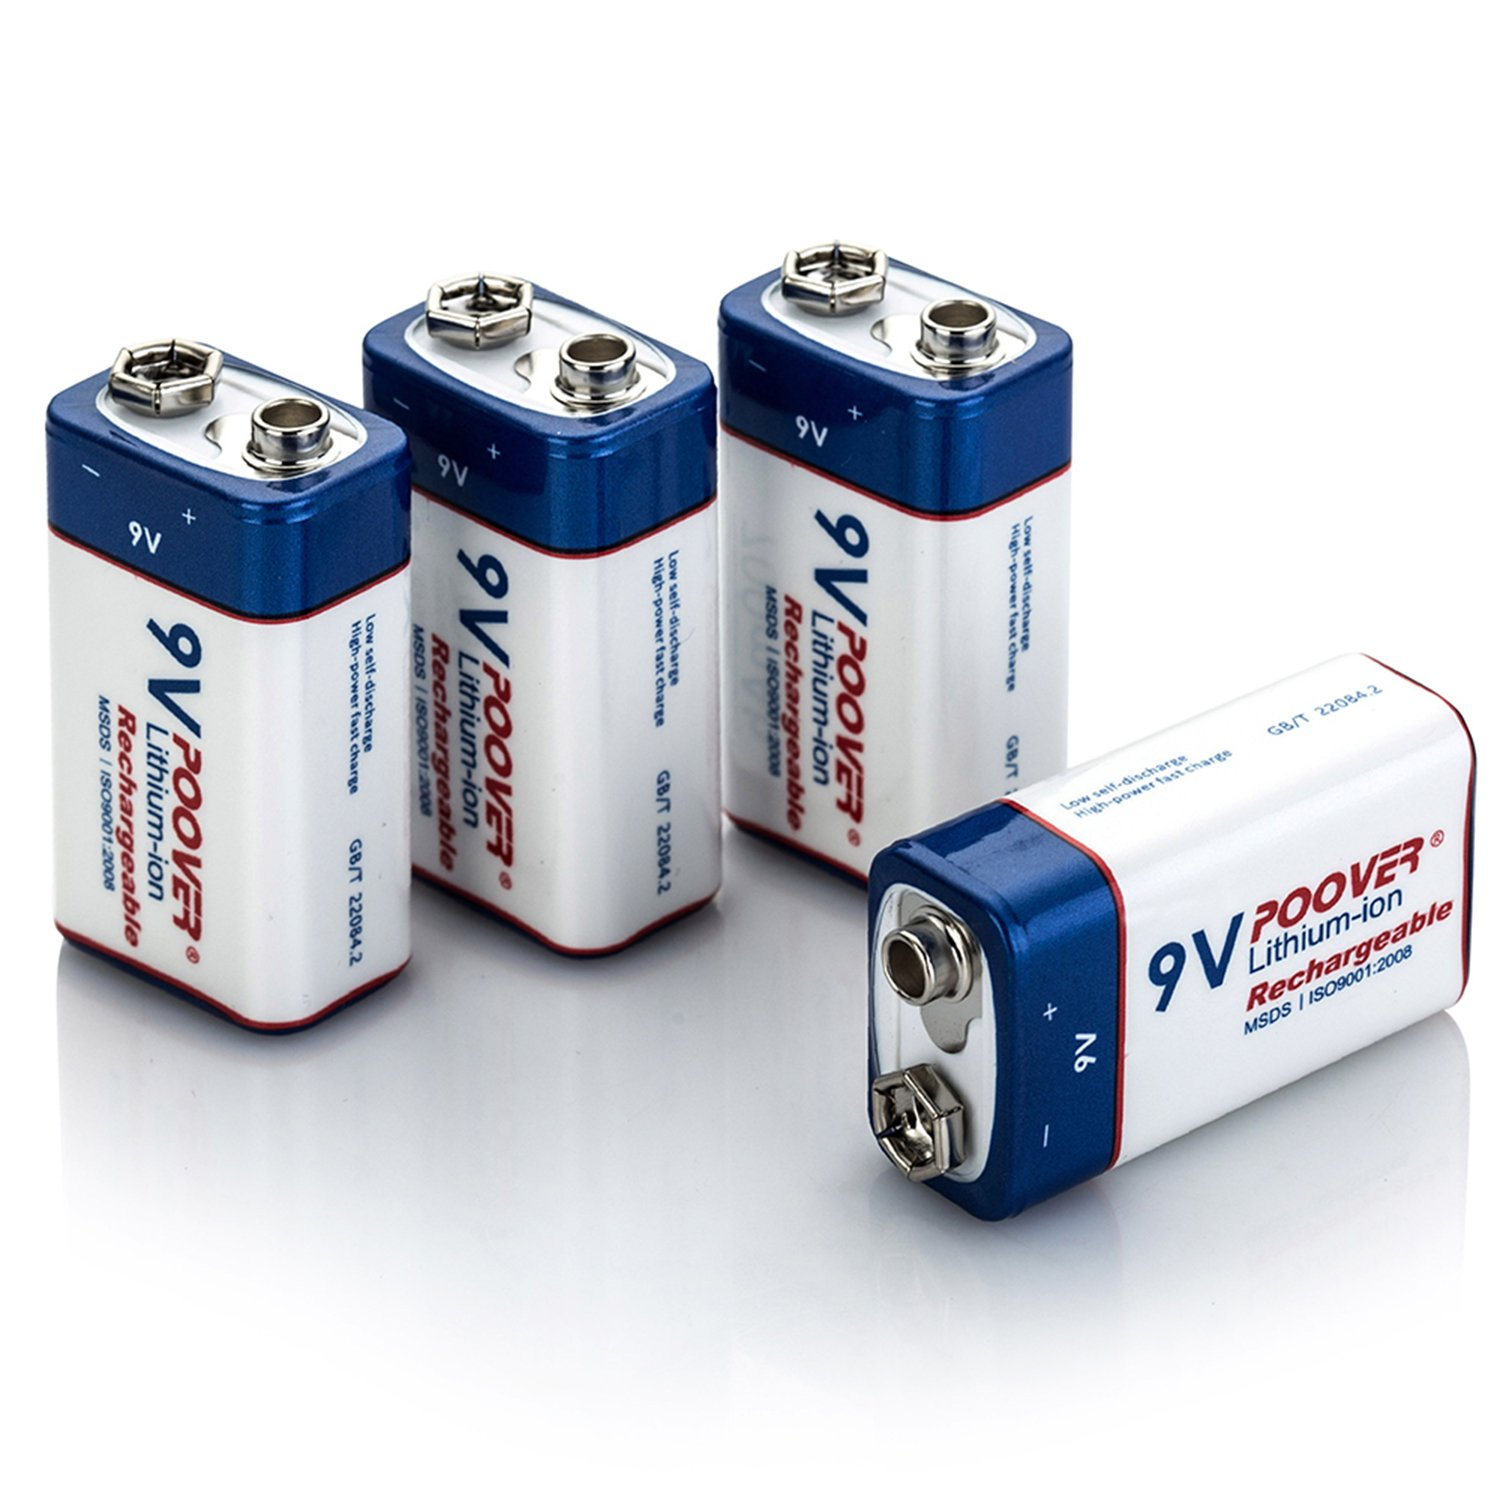 Amazon Poover 9V Battery 700mAh 6f22 9volt Lithium Rechargeable Batteries 4 Pack Li Ion 4pack 9v Home Audio Theater